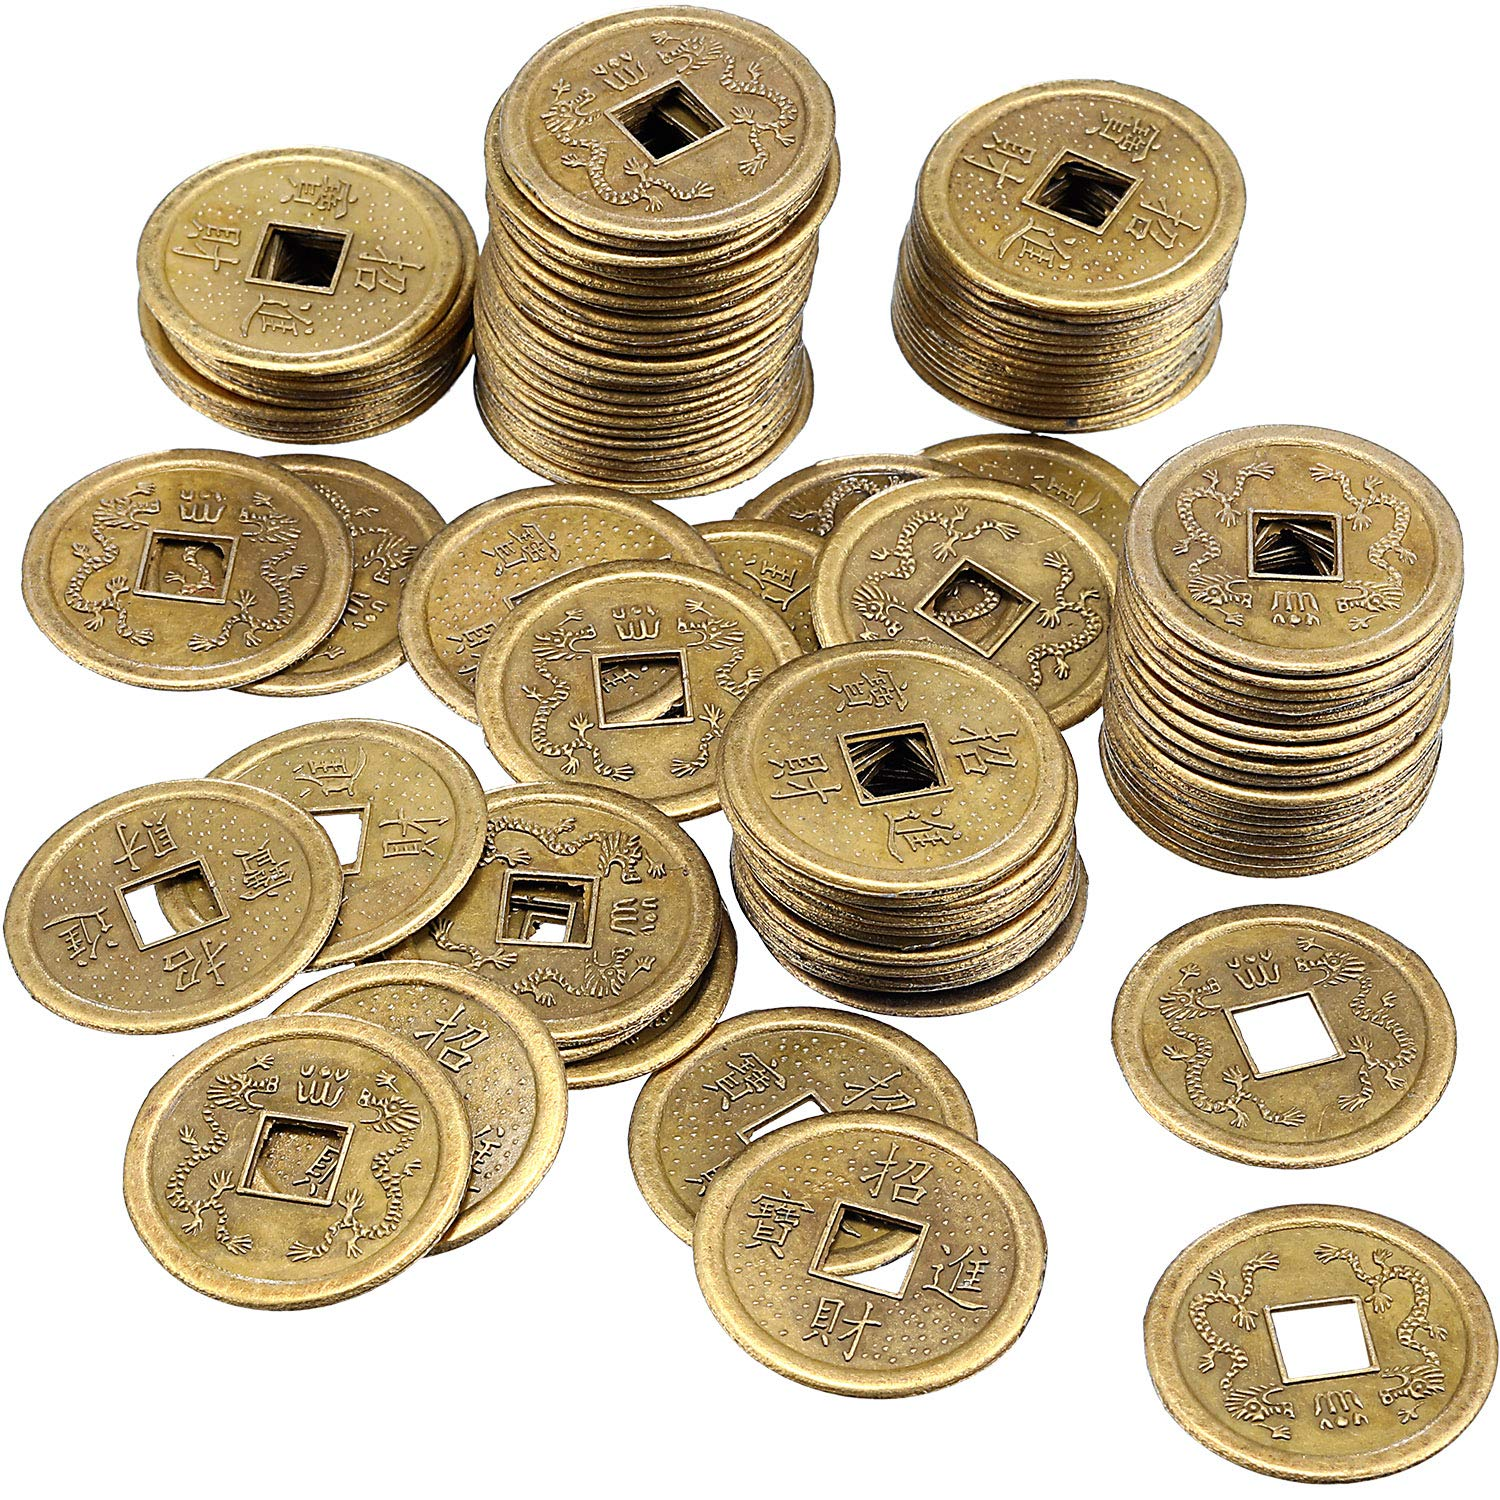 Motanar 100 Pieces 1 Inch Chinese Fortune Coins Feng Shui I-Ching Coins Chinese Good Luck Coins Ancient Chinese Dynasty Time Coin